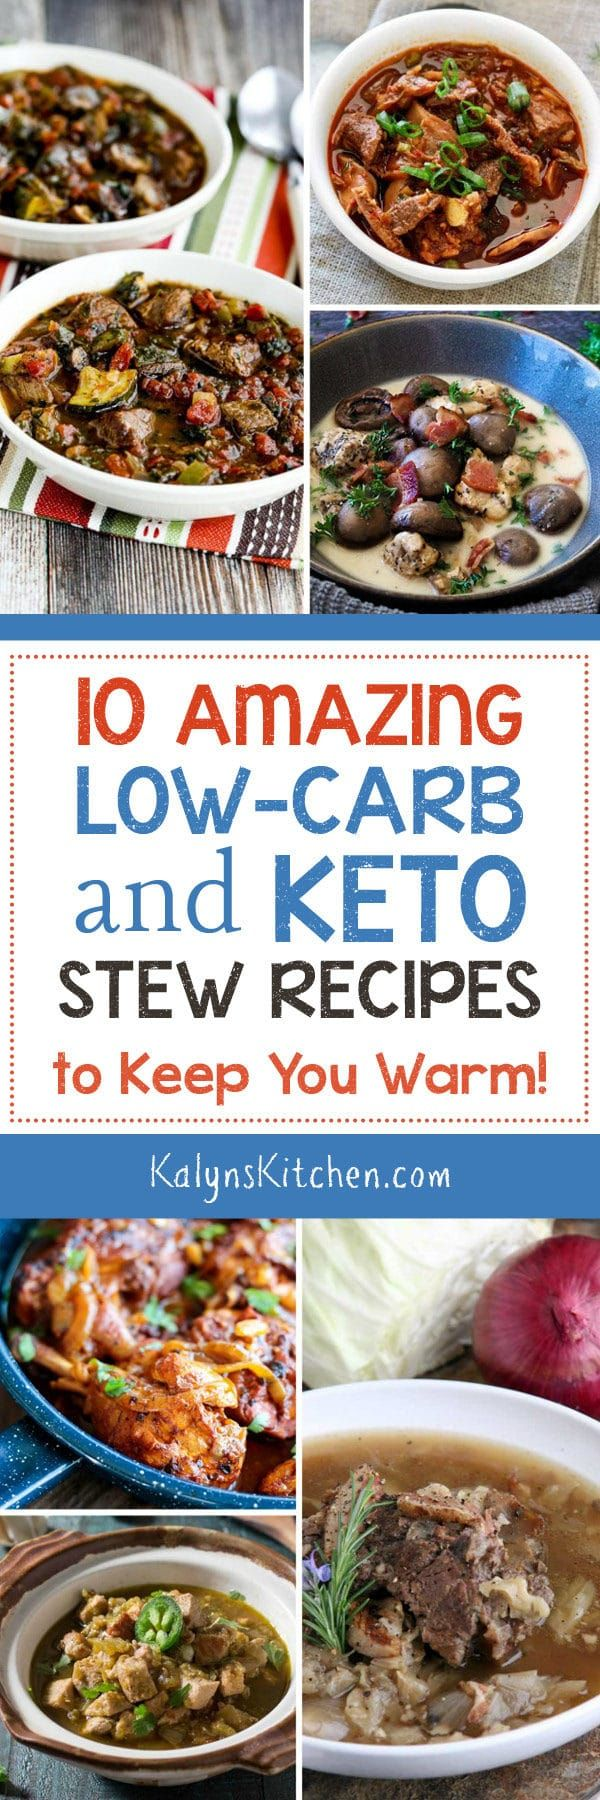 10 Amazing Low-Carb and Keto Stew Recipes to Keep You Warm!